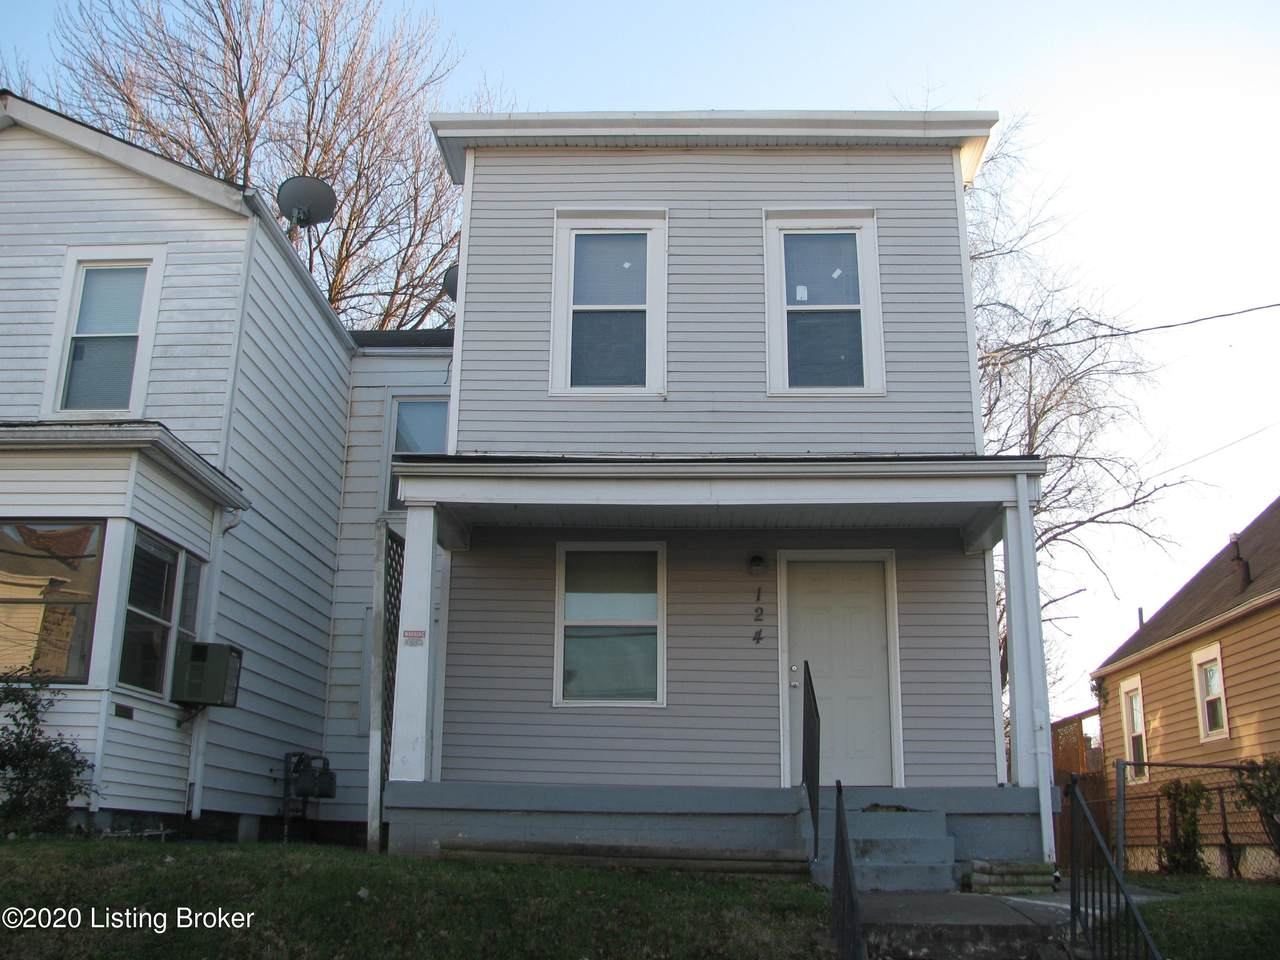 124 Harlan Ave - Photo 1